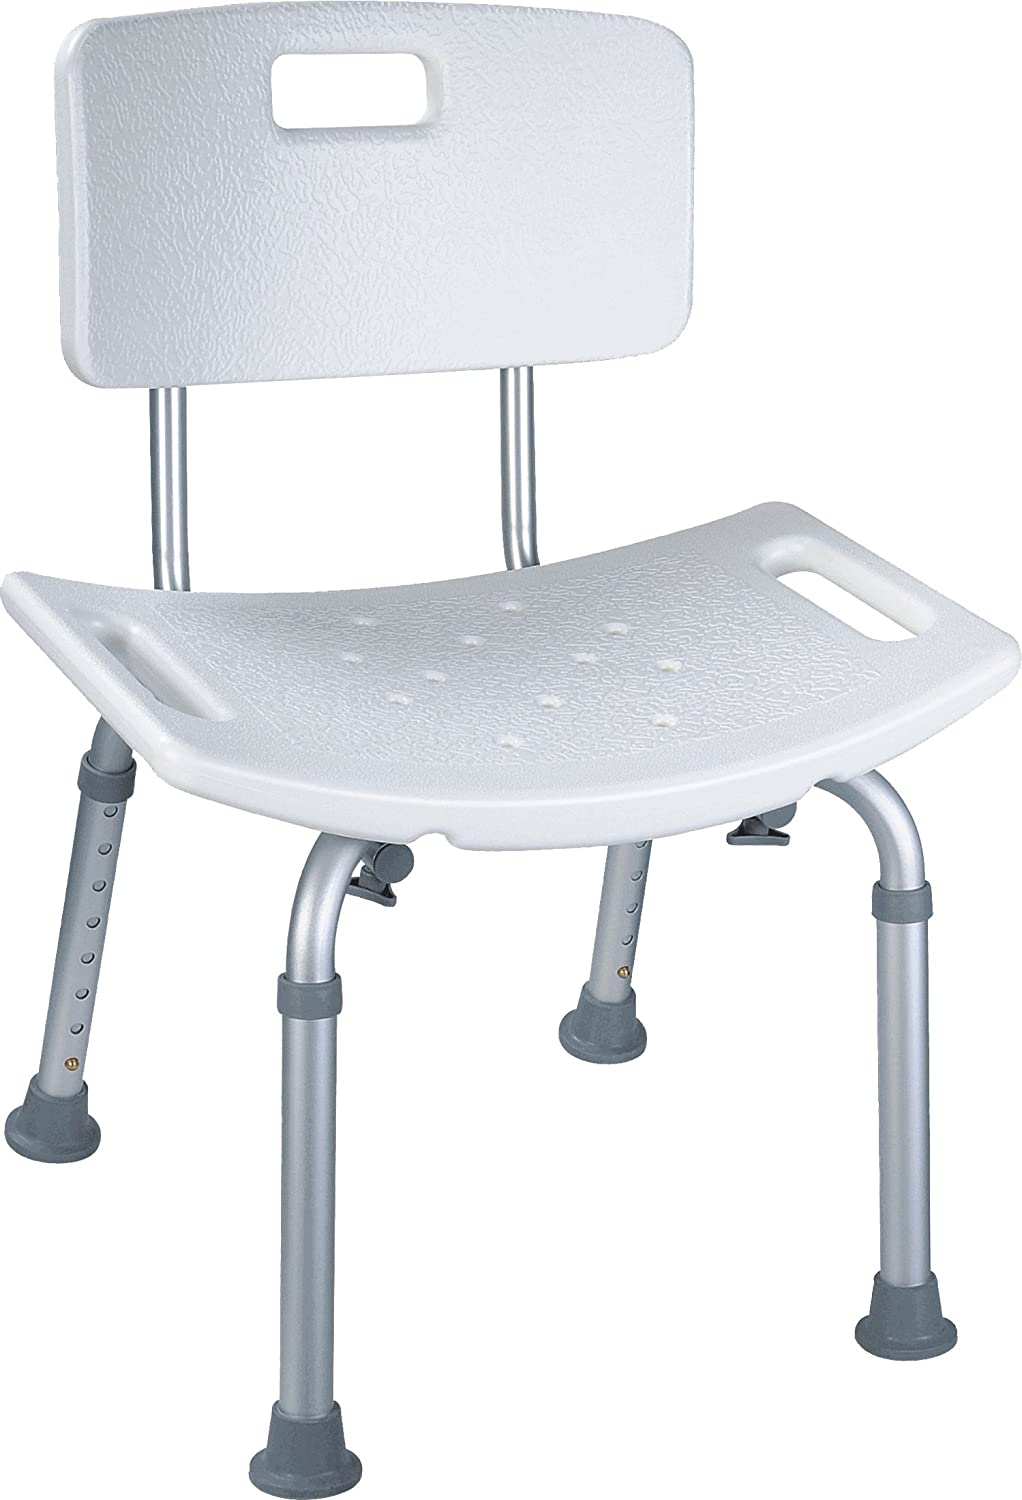 Amazon.com: ZCHSBH02 - Shower Chair with Back: Home Improvement